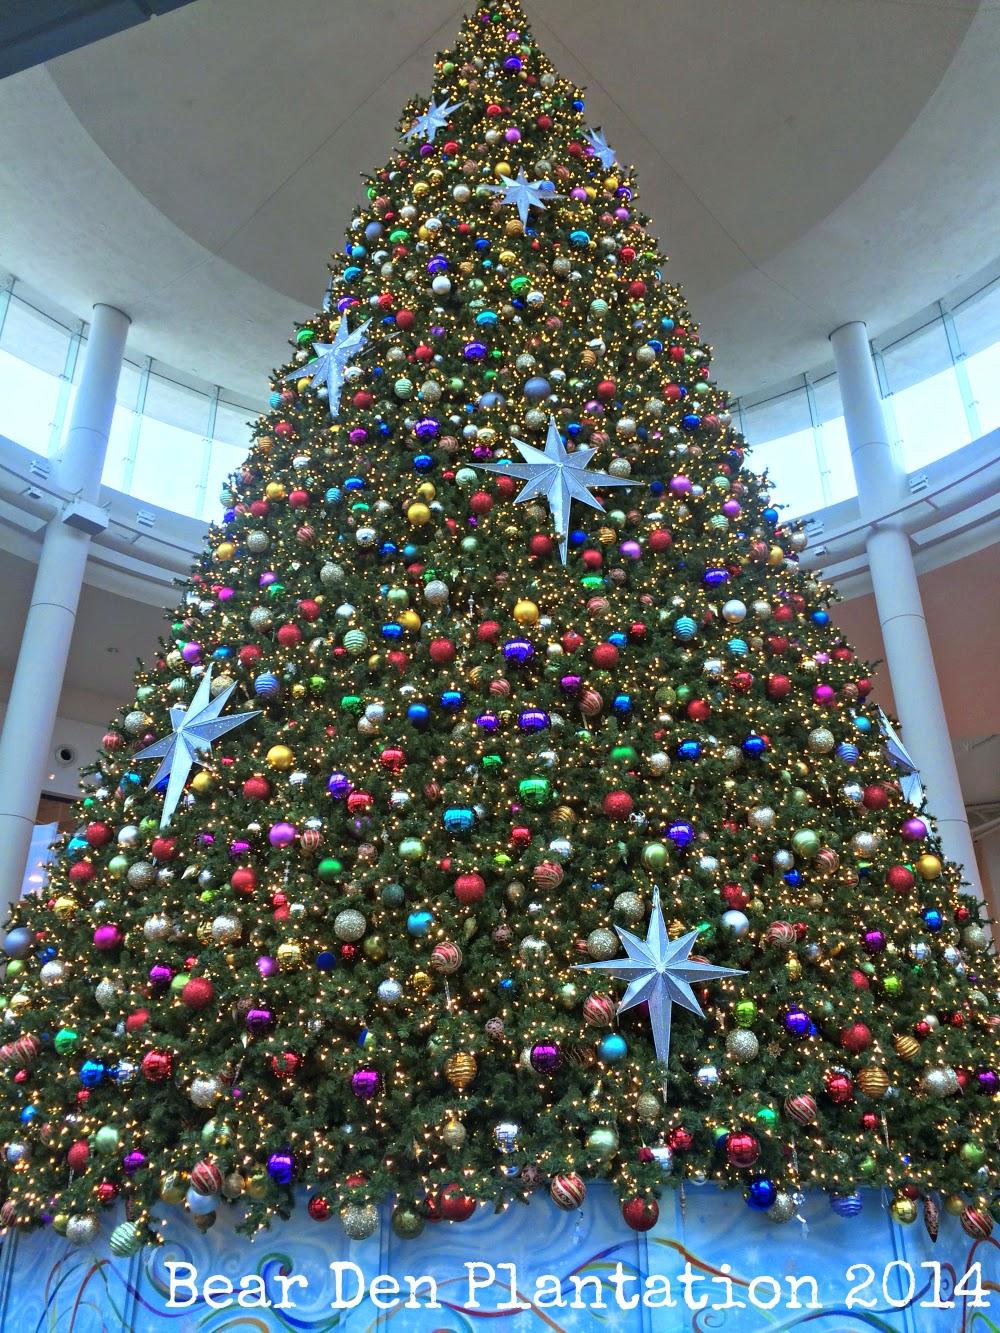 Two-story Christmas Tree at Mall at Millenia, first floor